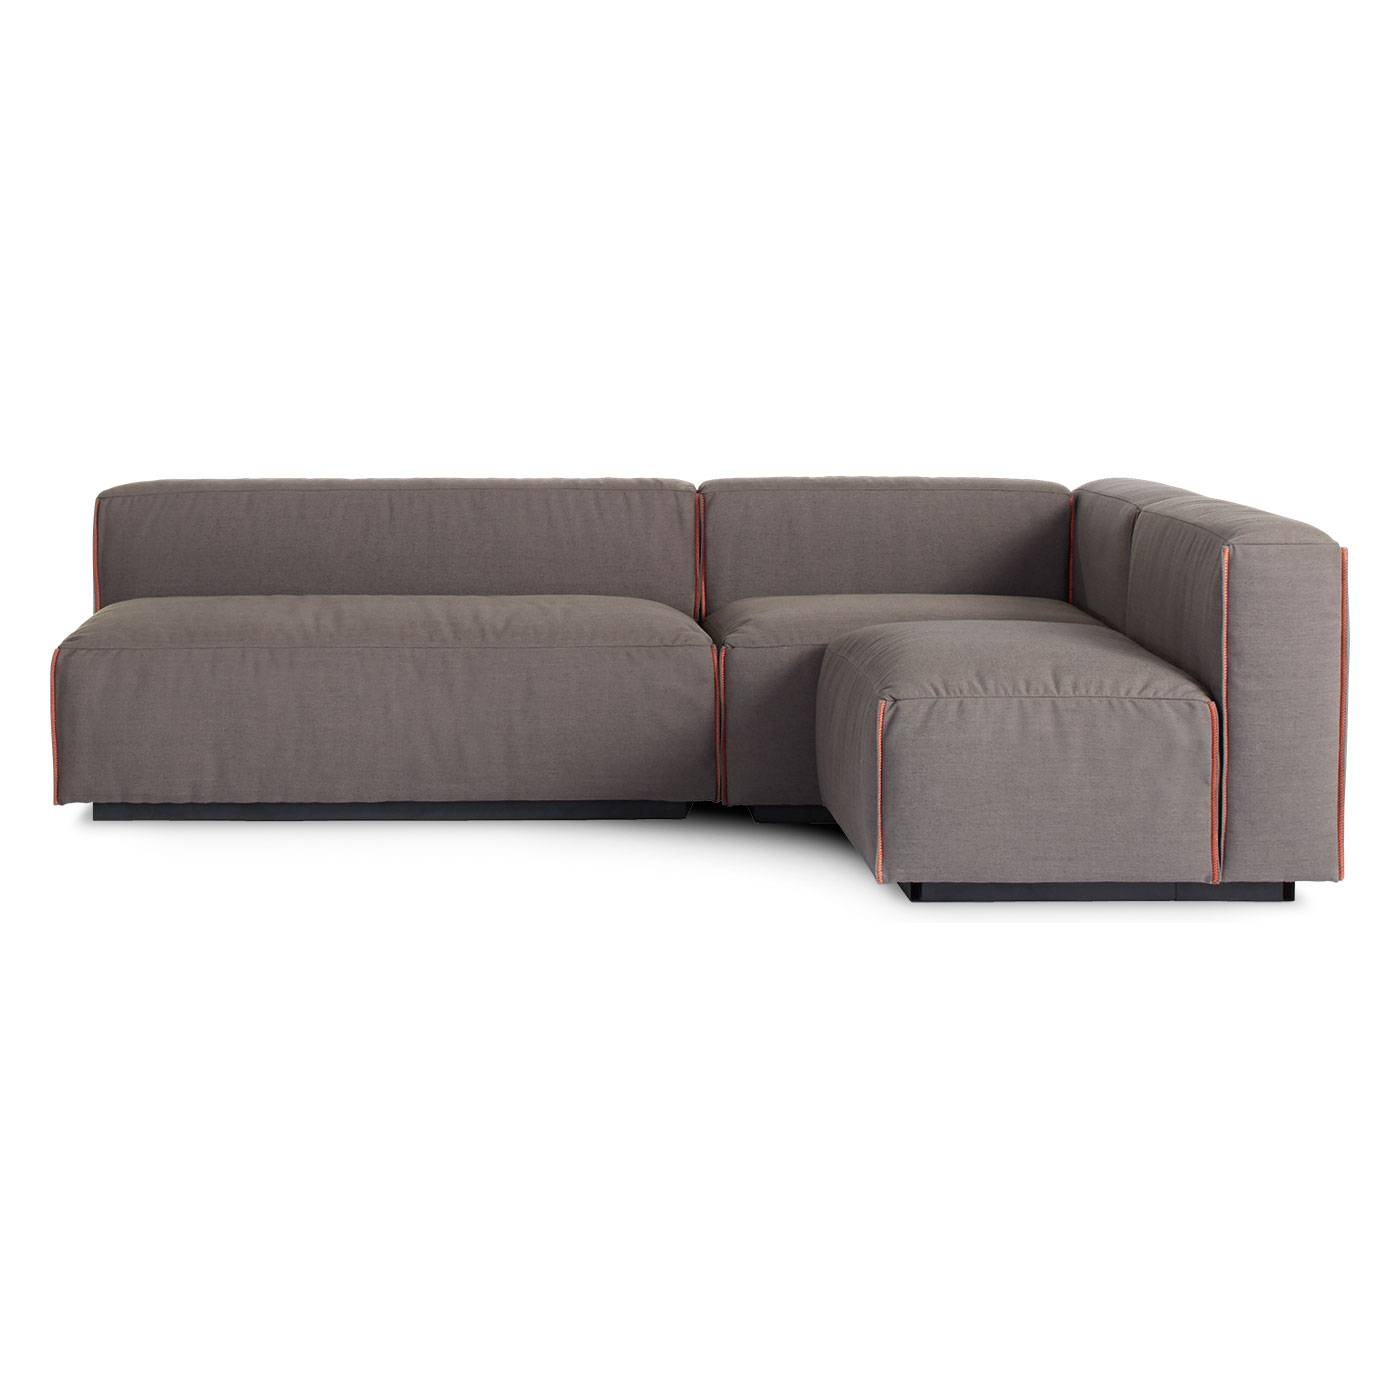 Cleon Medium Sectional - Armless Sectional | Blu Dot with Armless Sectional Sofas (Image 6 of 30)